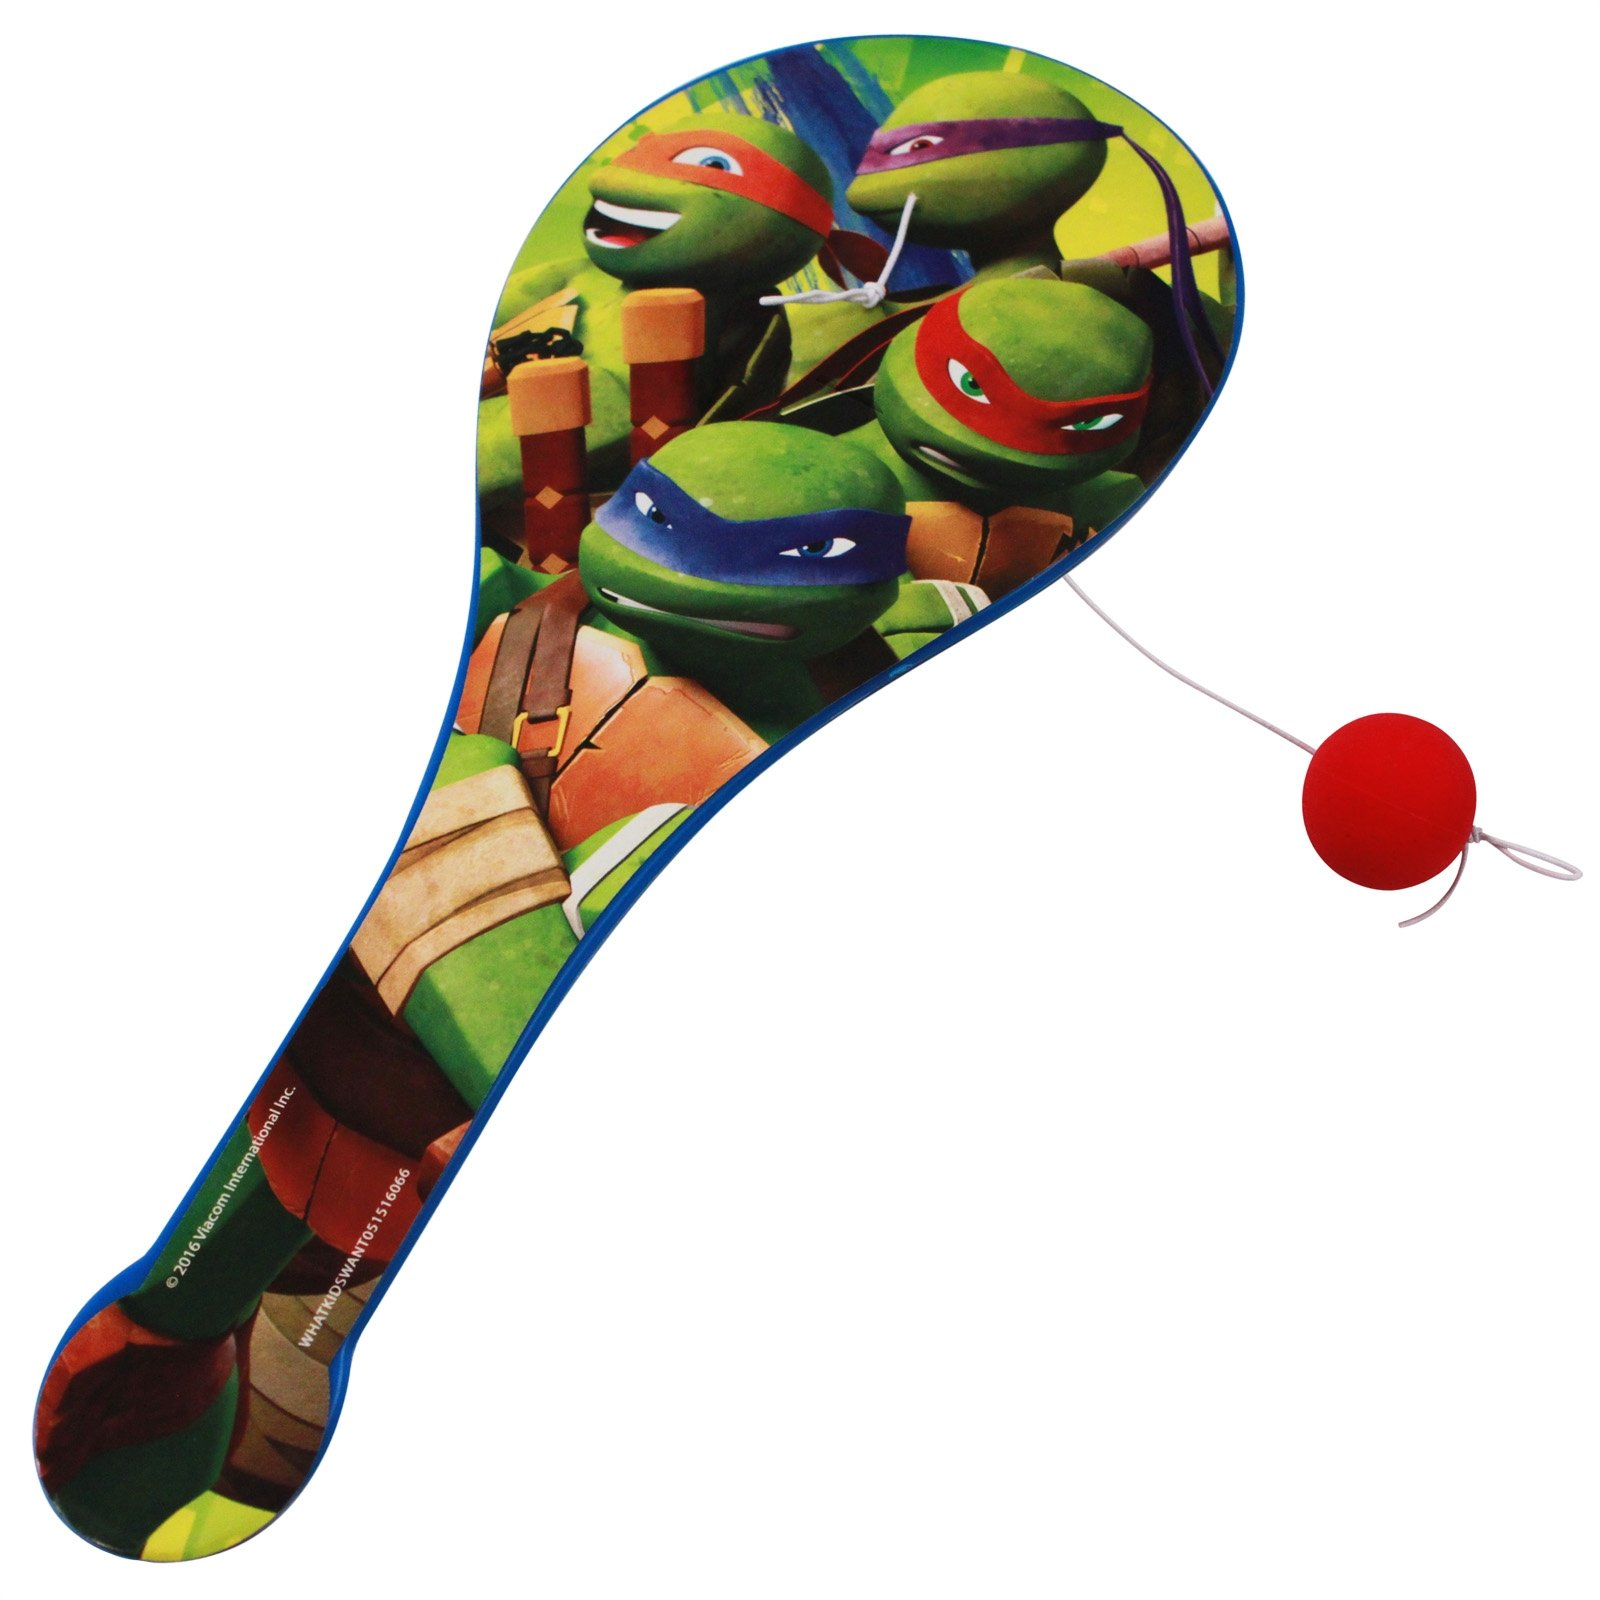 Nickelodeon Officially Licensed Ninja Turtles Kids Paddle Ball Boys Toy